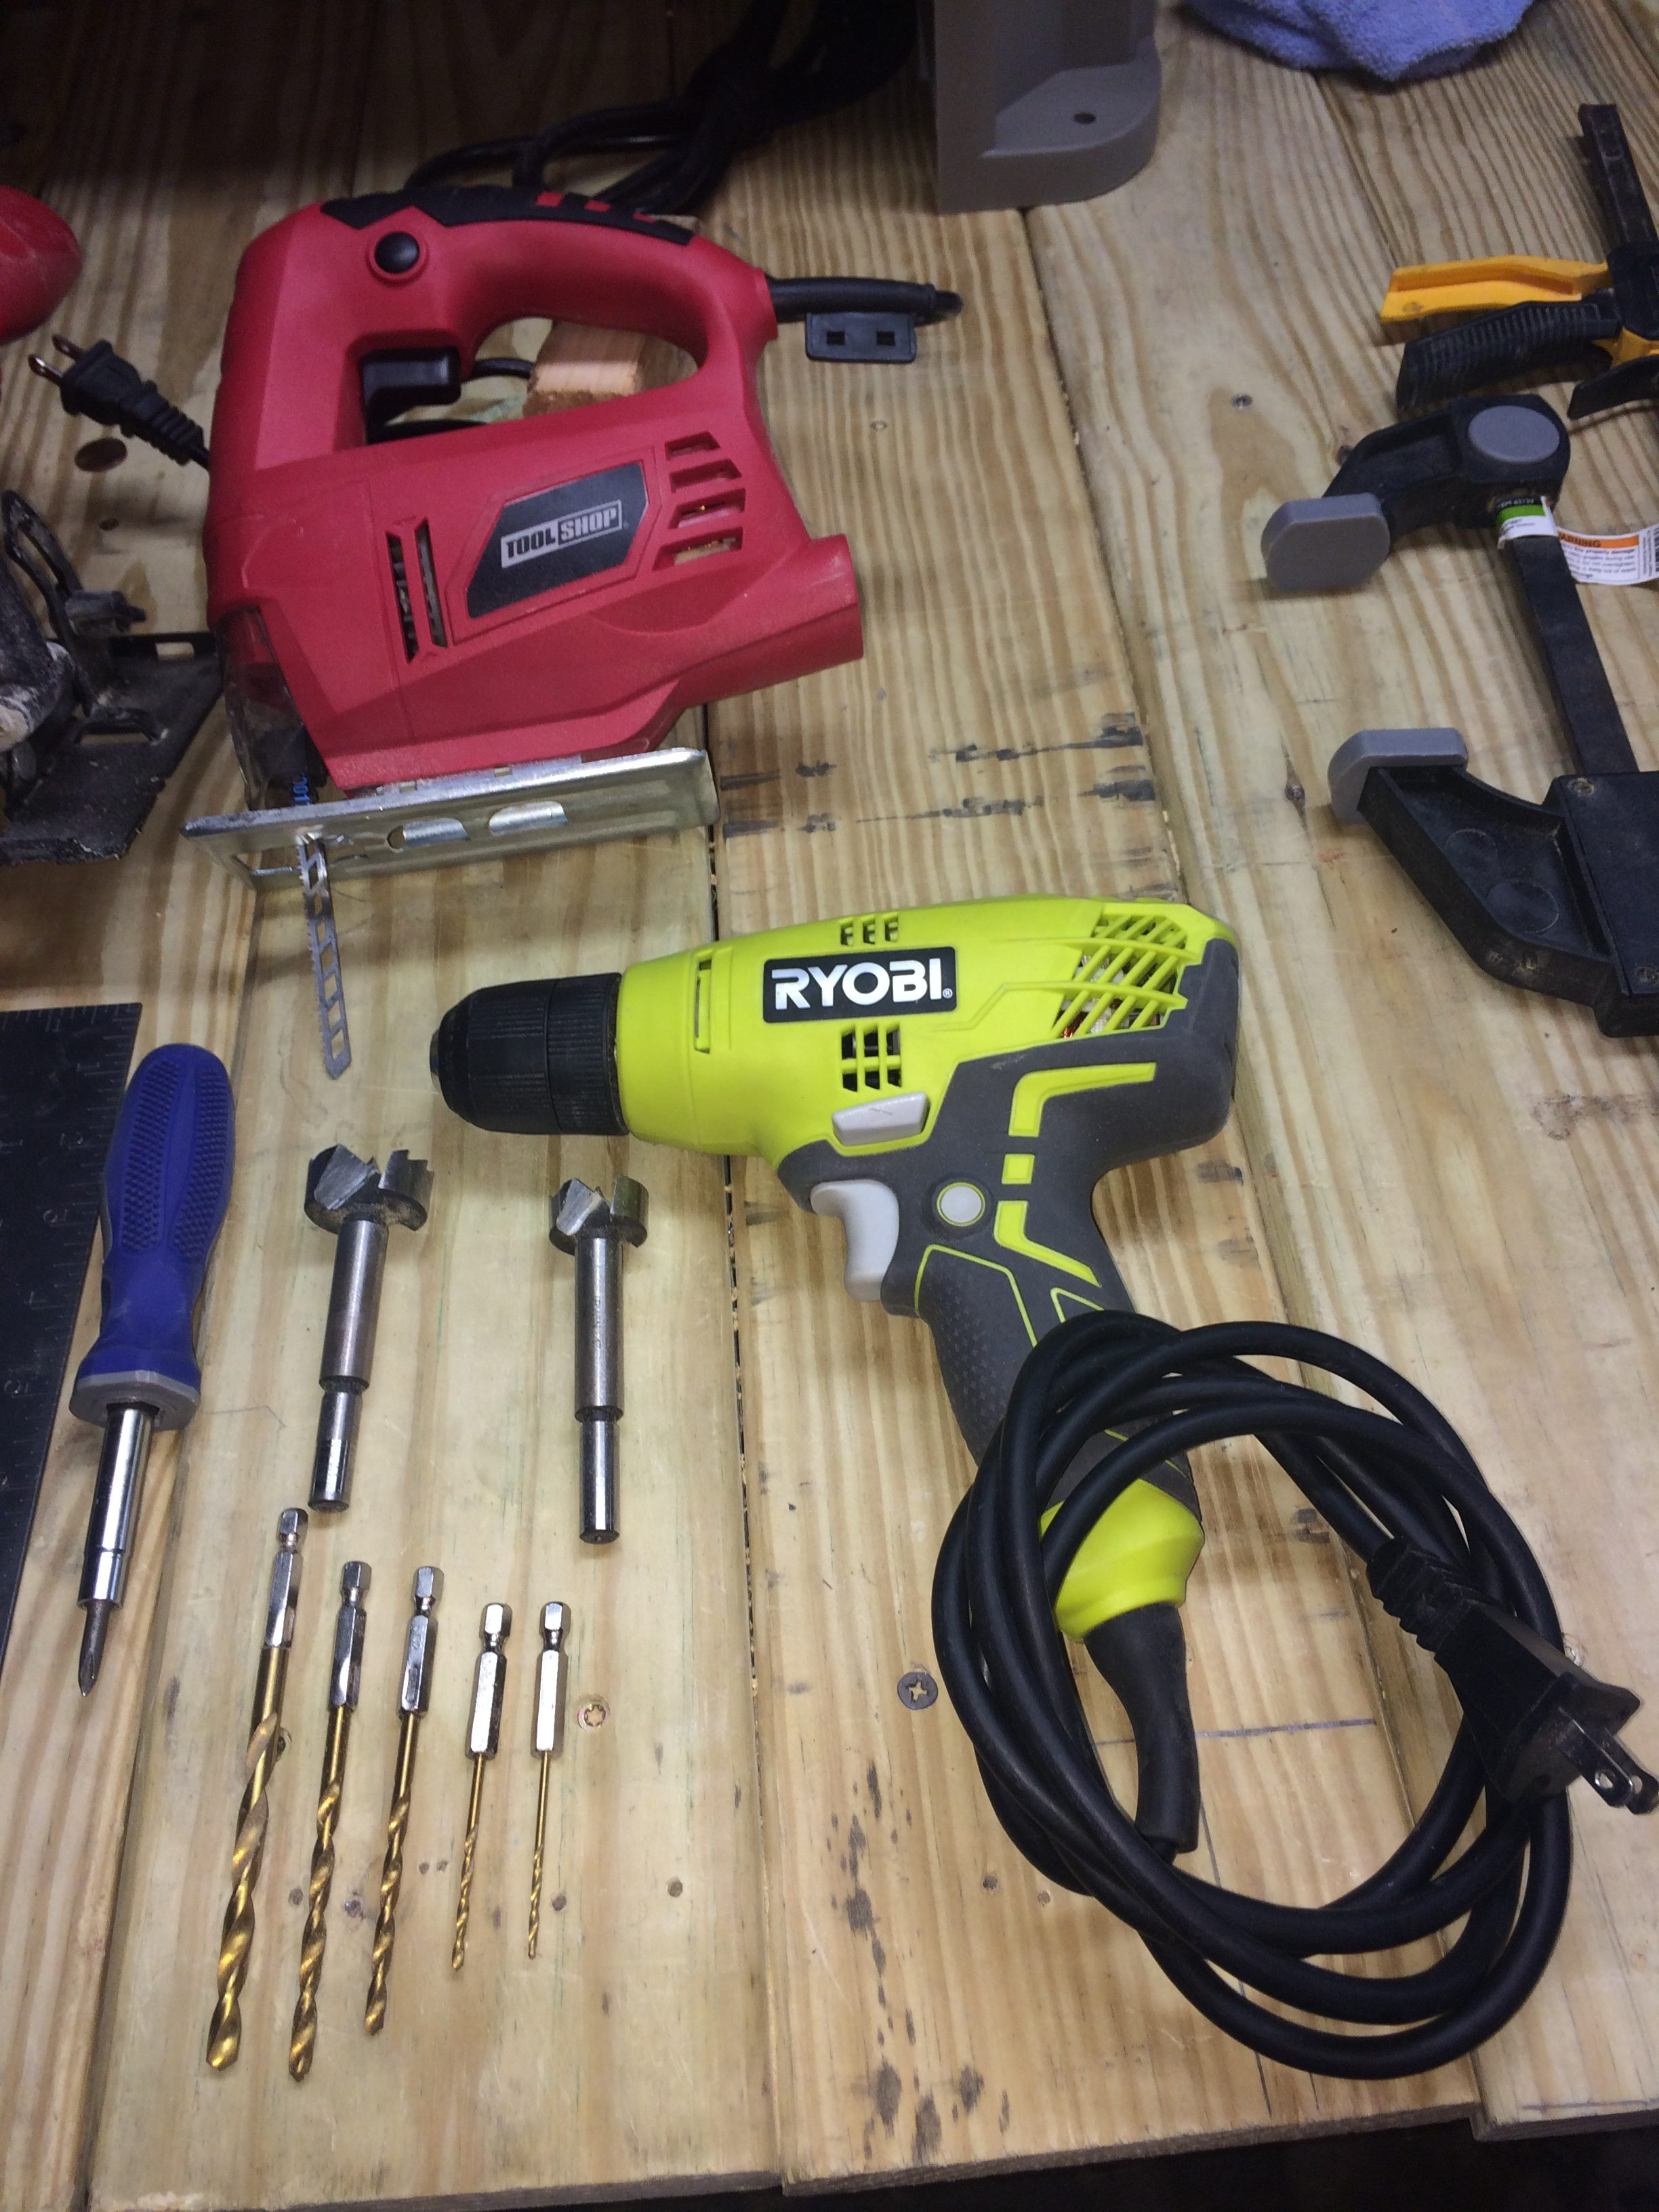 Jig Saw, Dril,Screw Driver, and various Drill Bits